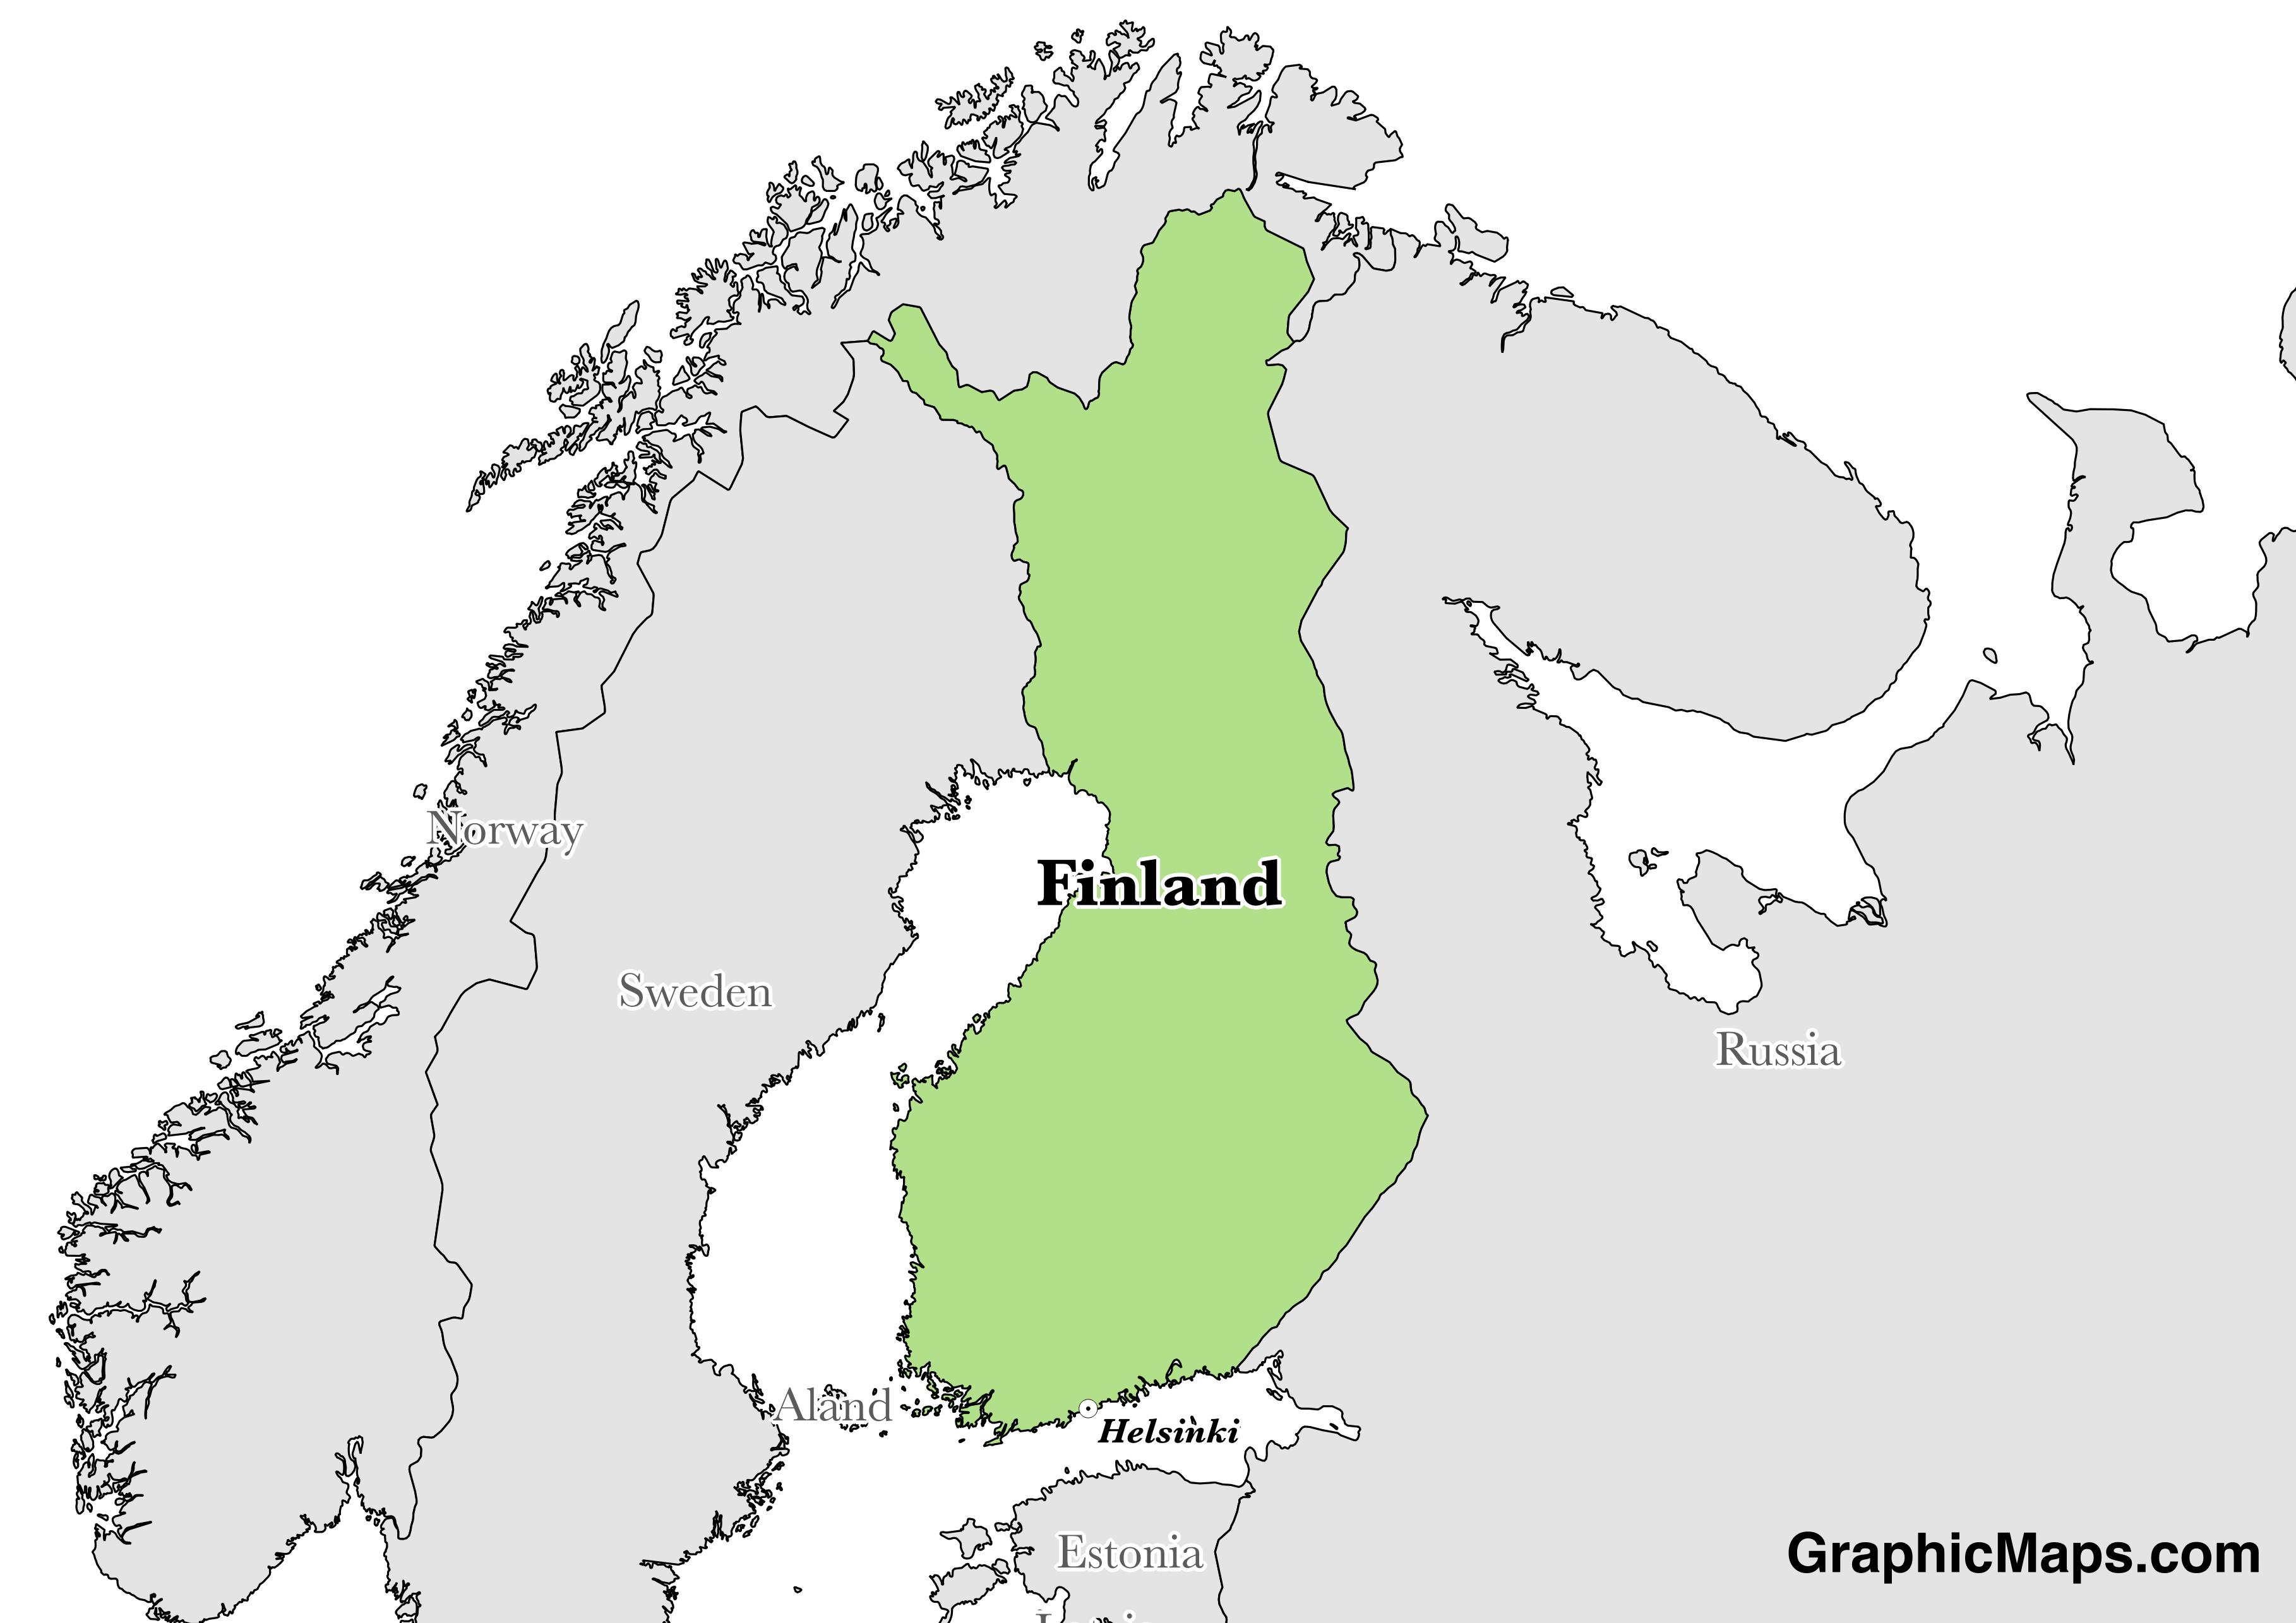 Map showing the location of Finland